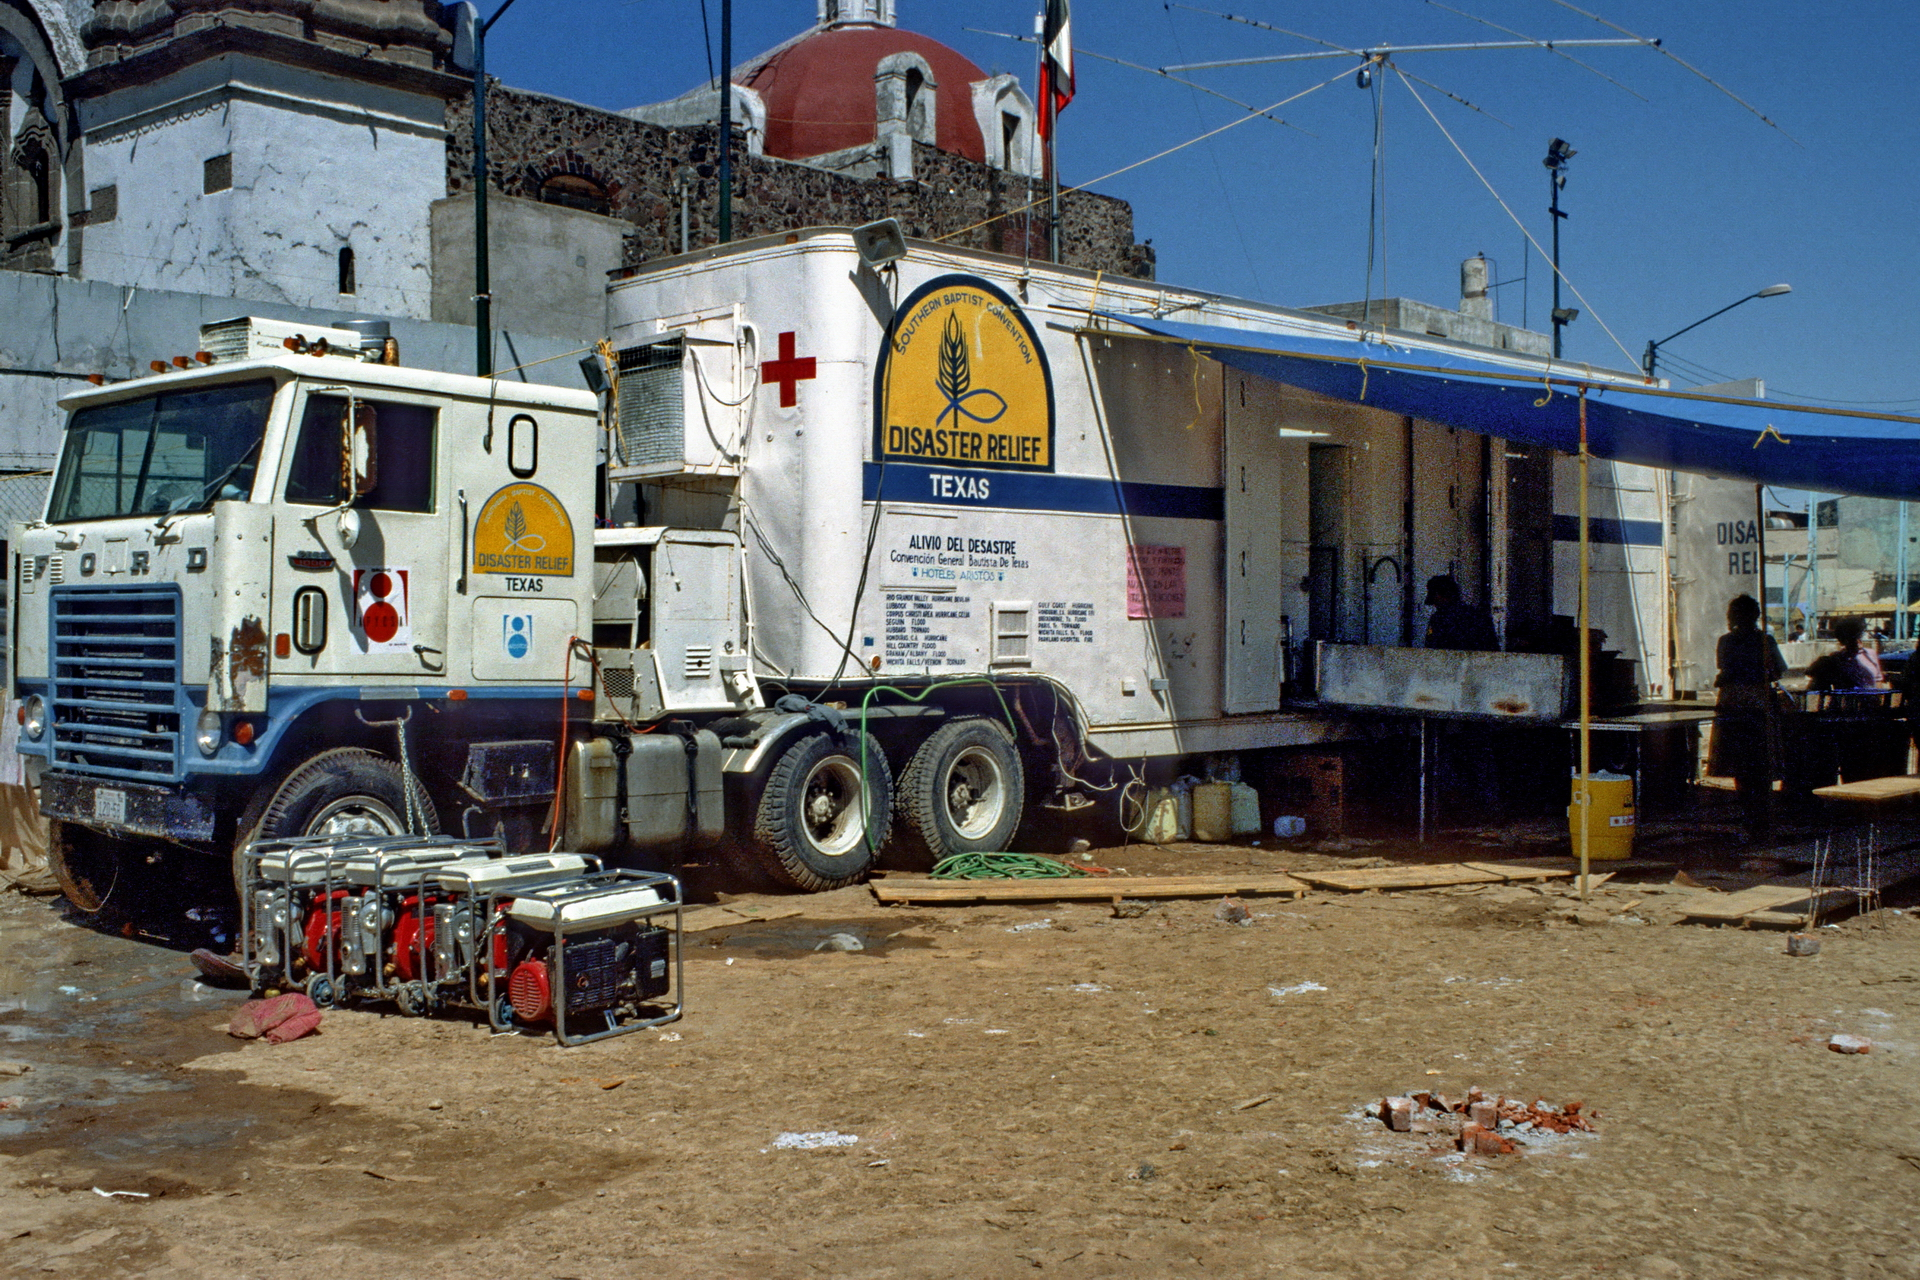 Texas Baptist Men's Disaster Relief mobile kitchen set up in the soccer field of the community center in the Tepito barrio